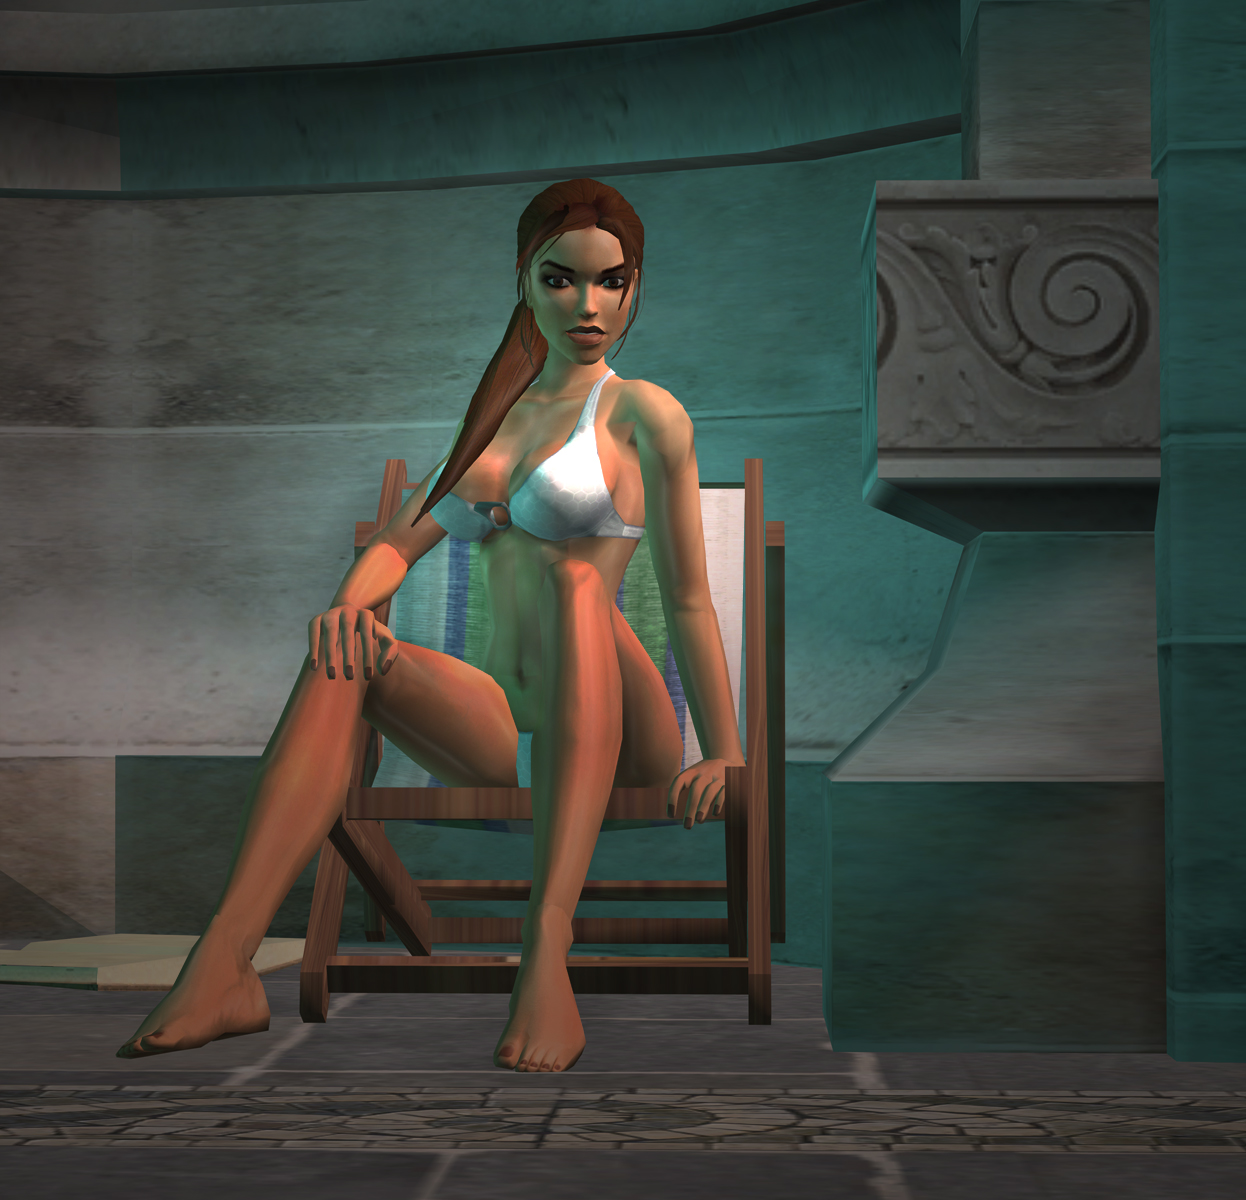 Gamesradar tomb raider mod sexy video